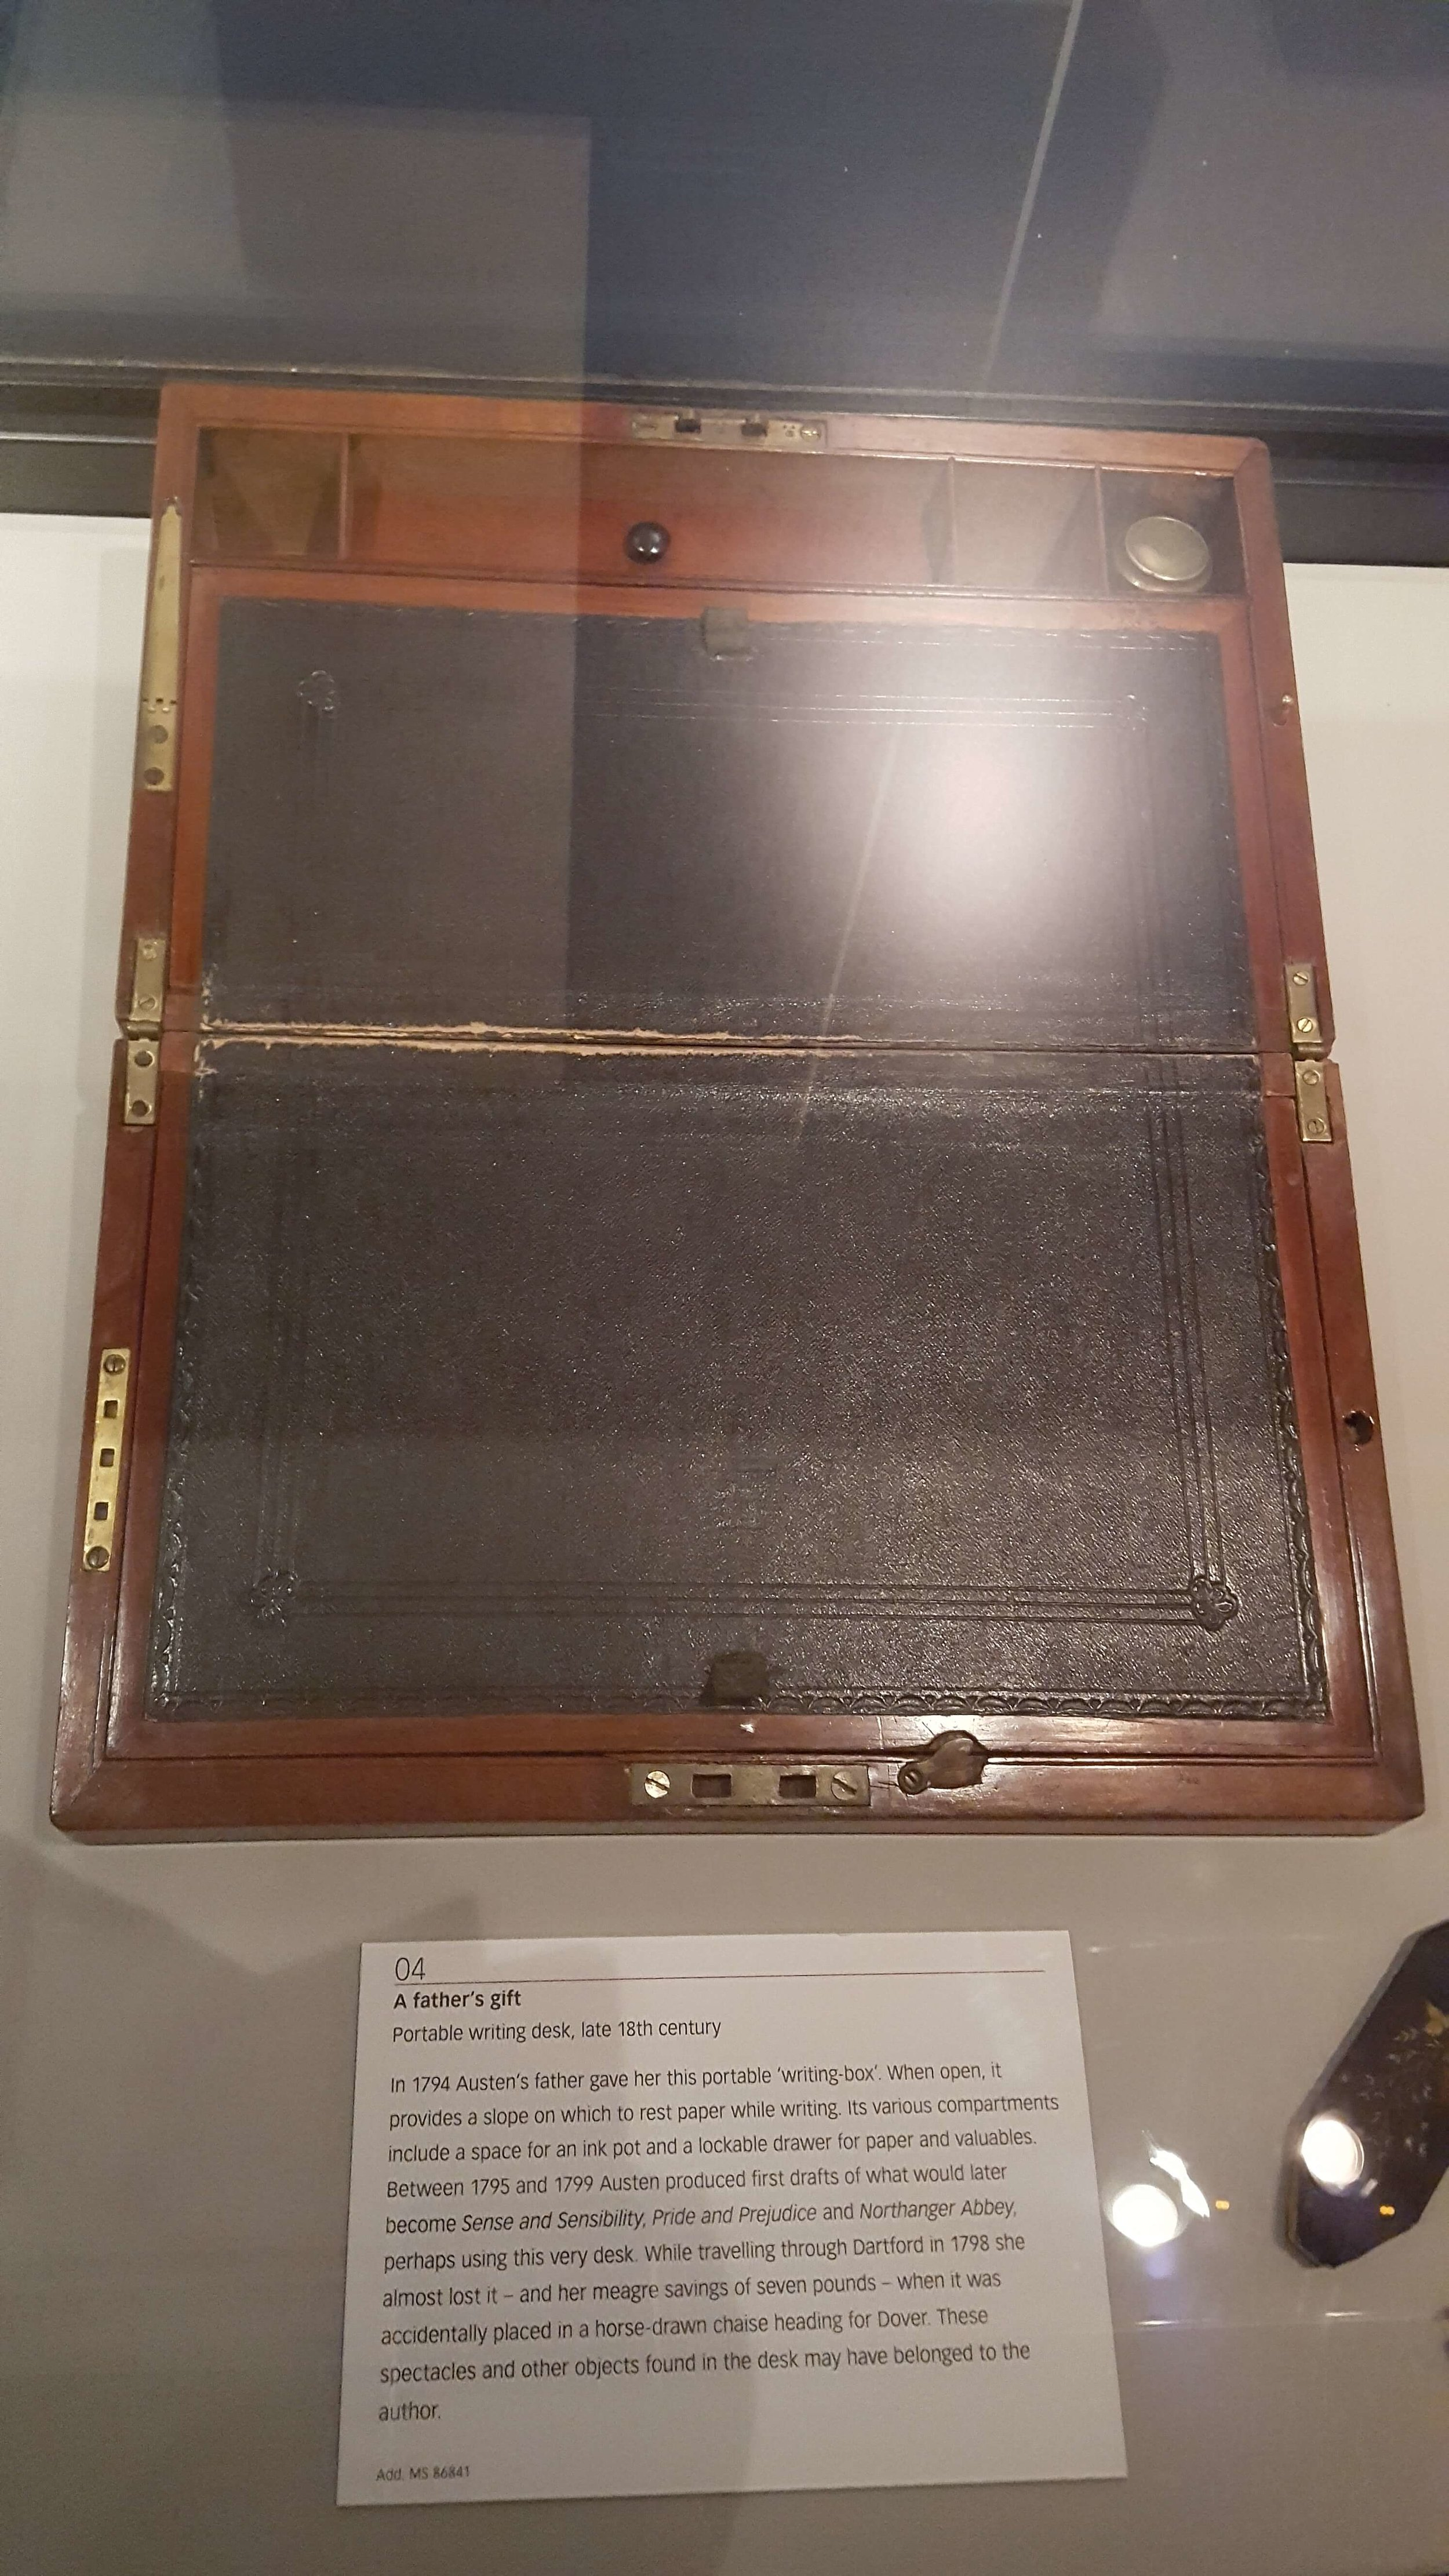 This is Jane Austen's portable writing box given to her by her father. She produced the first drafts of  Sense and Sensibility  and  Pride and Prejudice  on it. We'll take a gander at it during our tour of the British Library.